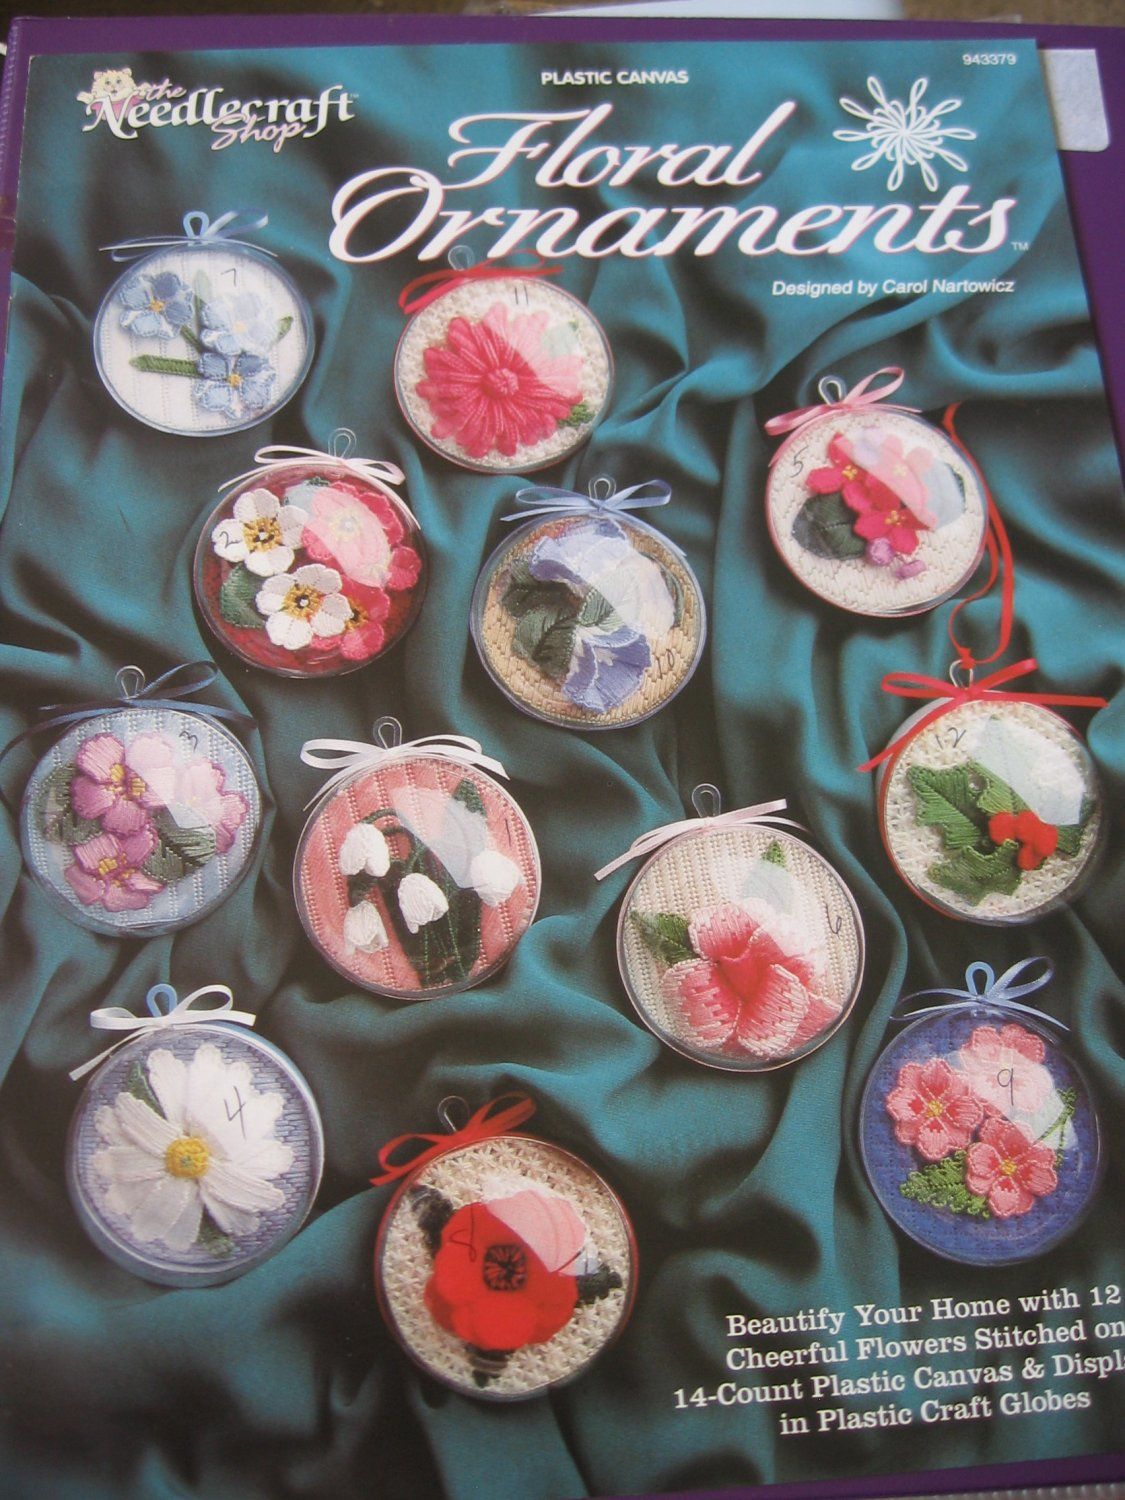 Floral Ornaments in Plastic Canvas Displayed in Plastic Craft Globes